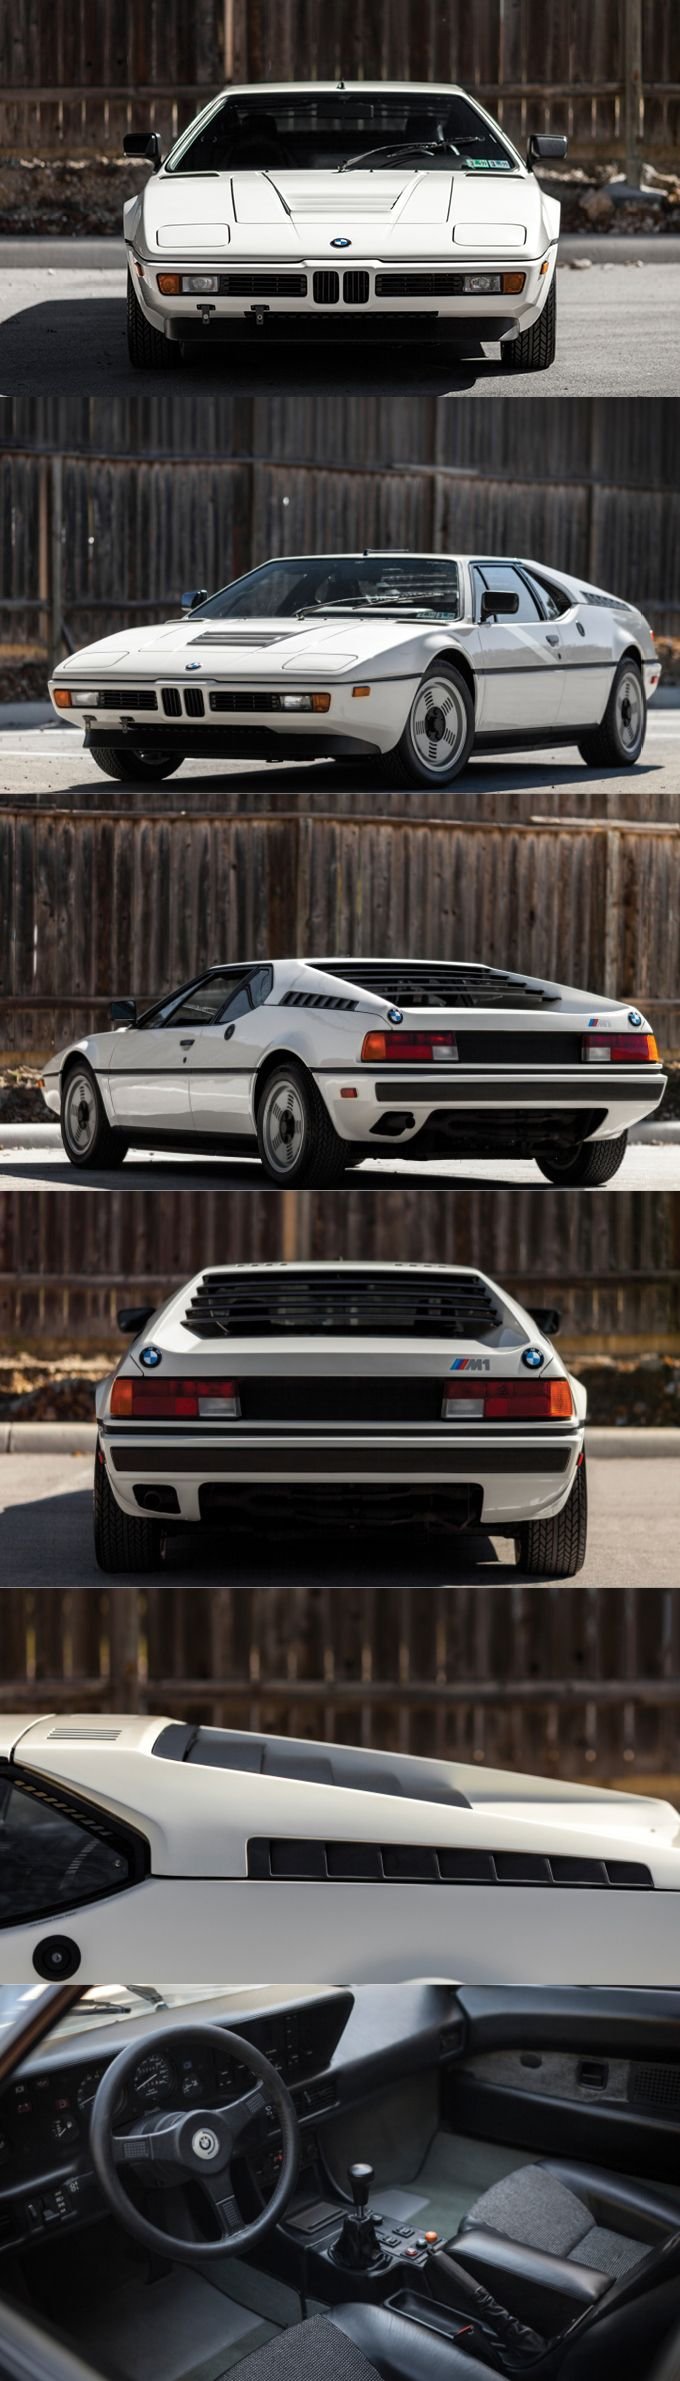 1978 BMW M1 / Giorgetto Giugiaro / 457 produced / 286hp M88 3.5l L6 / white / Germany / 17-384